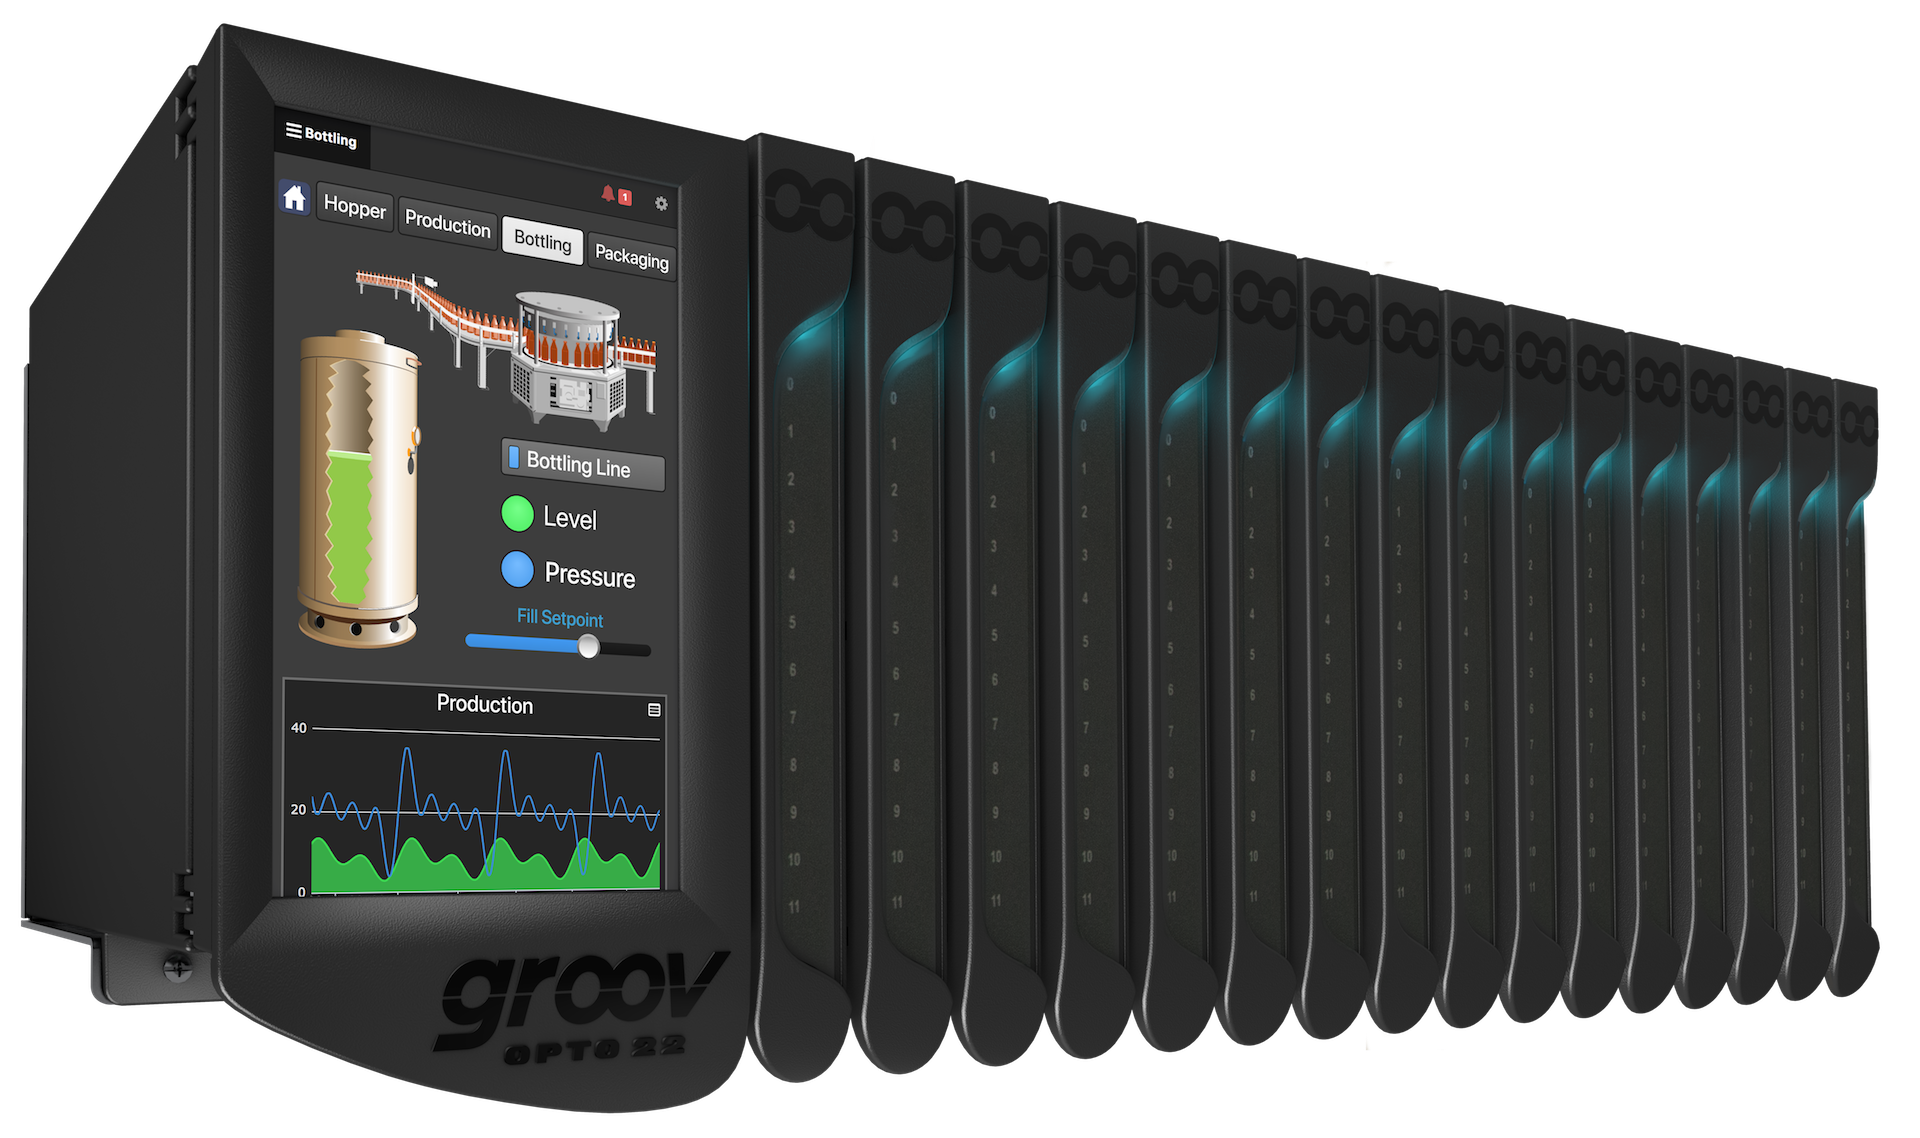 groov EPIC system from Opto 22